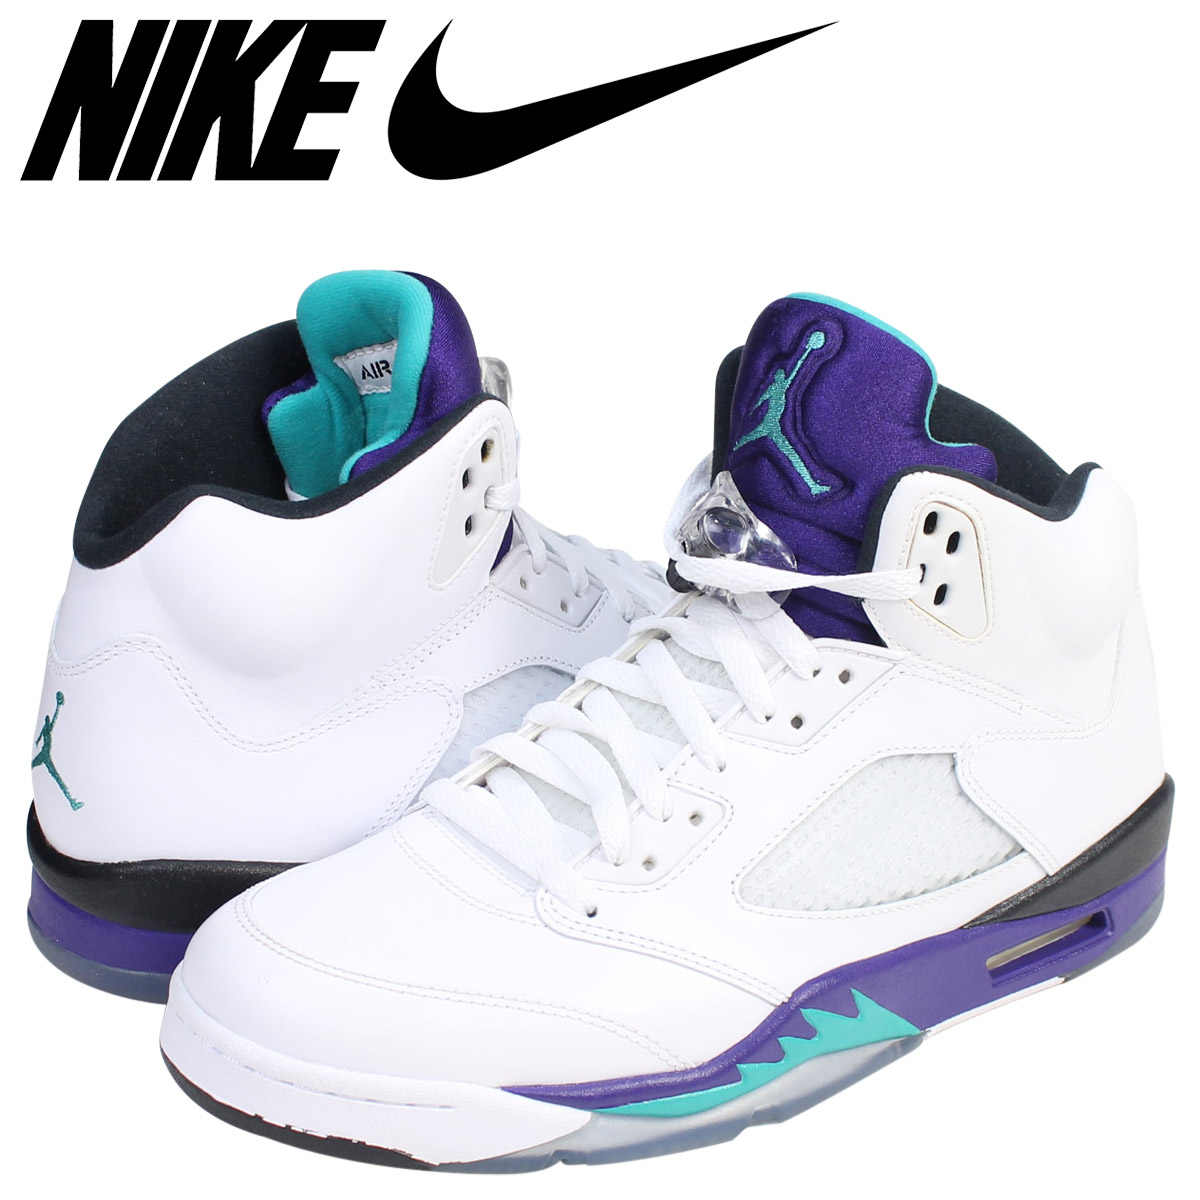 best service c122e 317c8 Nike NIKE Air Jordan 5 nostalgic sneakers AIR JORDAN 5 RETRO GRAPE  136,027-108 men s shoes white